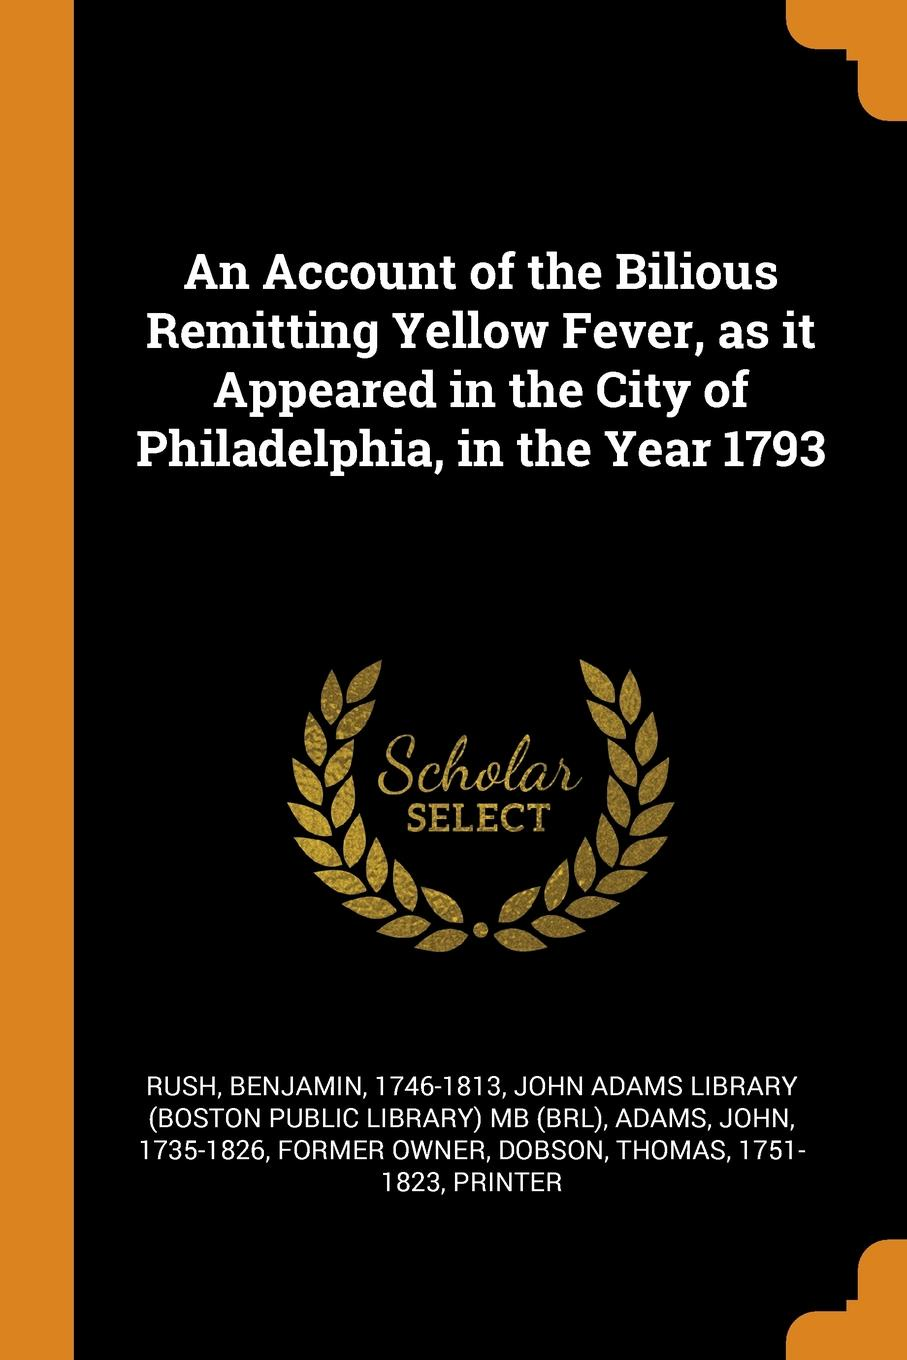 Benjamin Rush, John Adams An Account of the Bilious Remitting Yellow Fever, as it Appeared in the City of Philadelphia, in the Year 1793